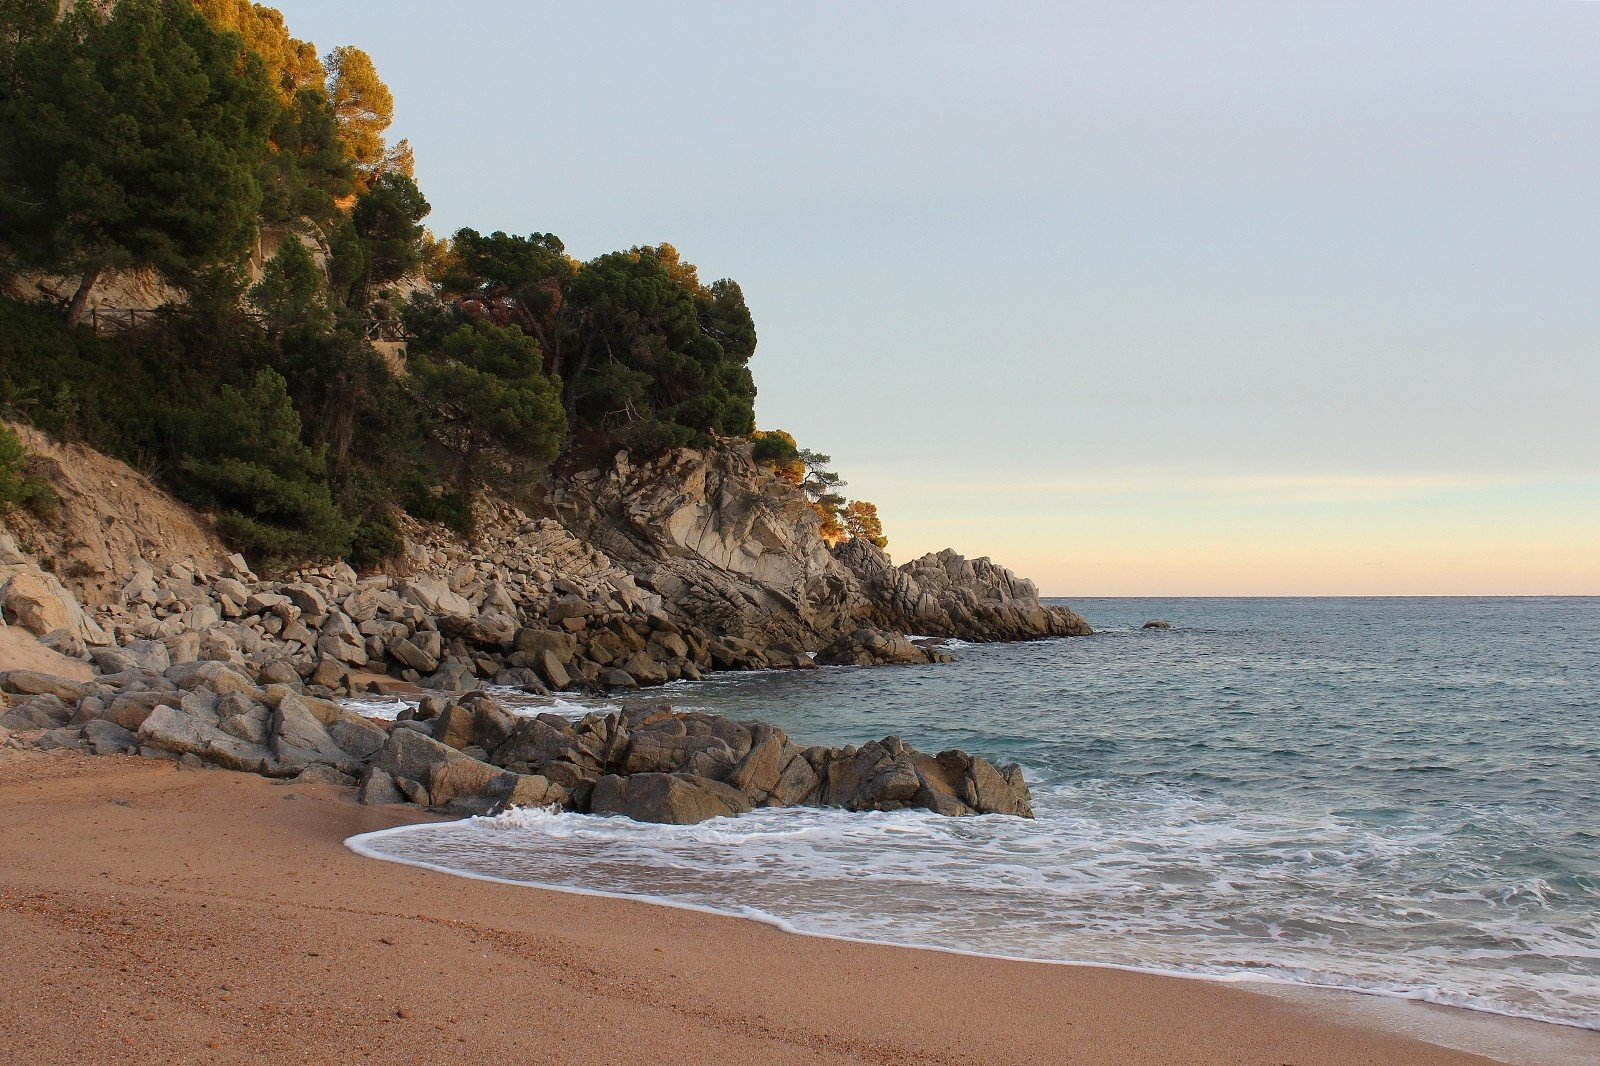 Offbeat outdoor sky water Nature Beach Coast shore body of water Sea Ocean rock cliff bay vacation sand wave cape wind wave terrain cove material sandy